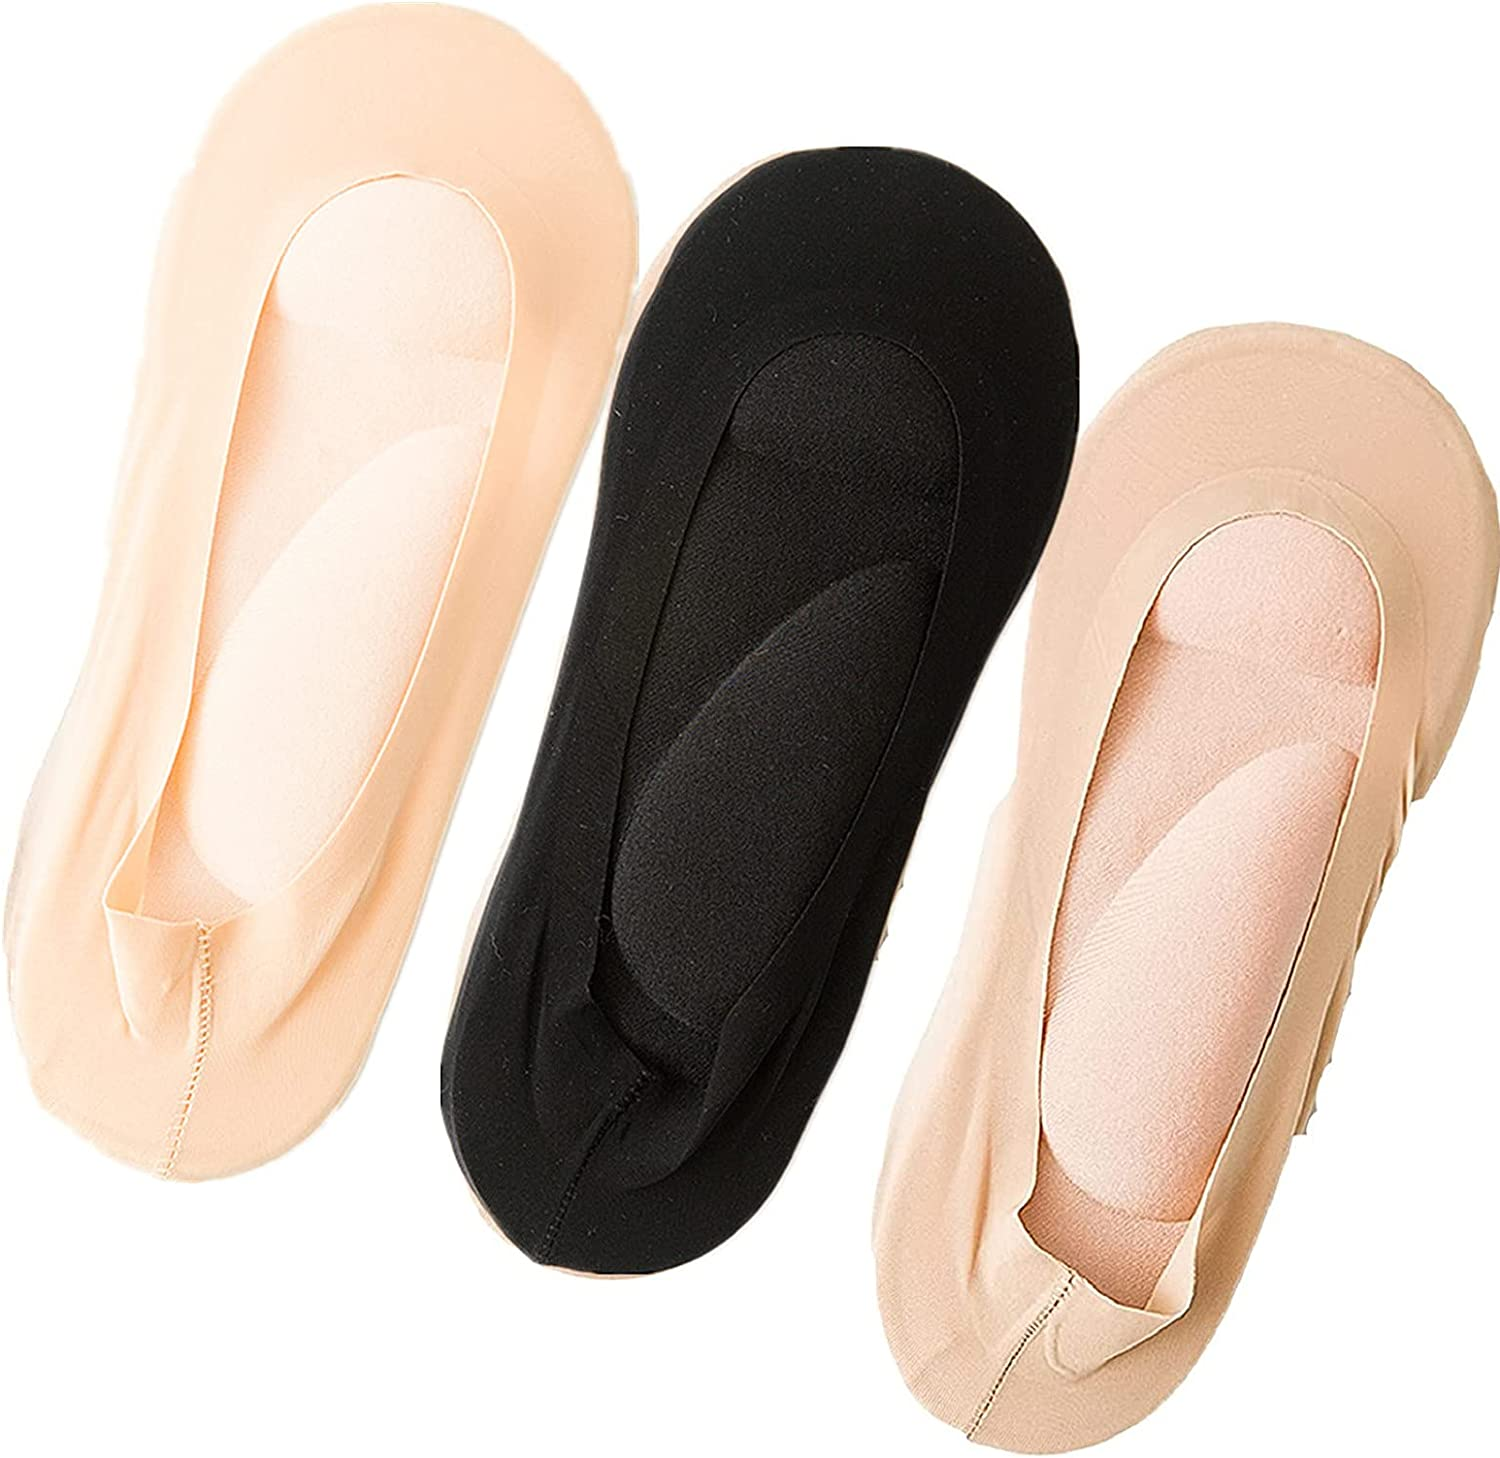 3 Pairs 3D Arch Support Socks Max 54% OFF Max 68% OFF Padded Massage Foot Cushioned